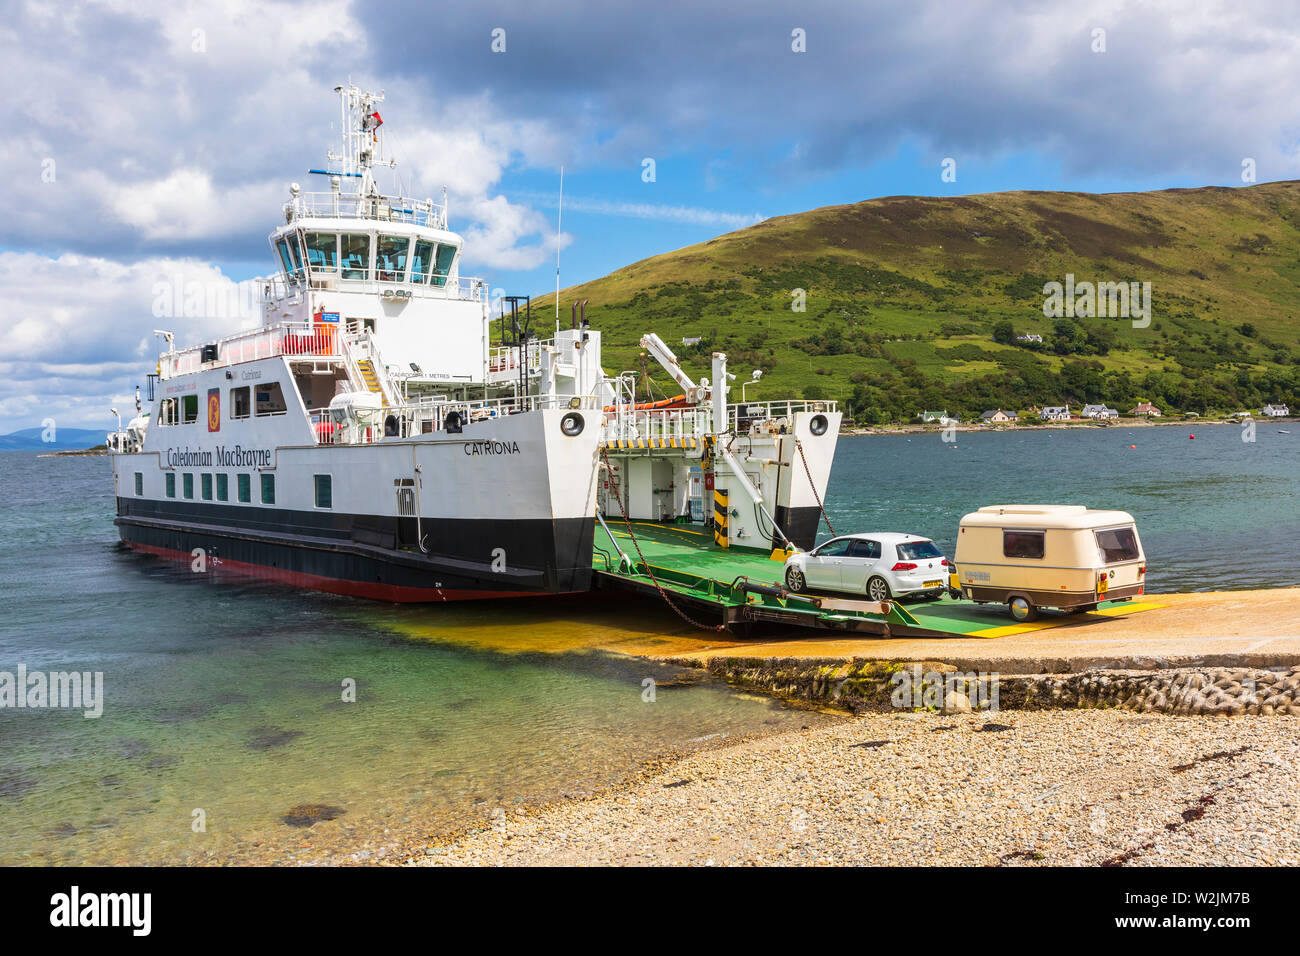 Car and caravan embarking onto the Caledonian MacBrayne car ferry Catriona at the slipway at Lochranza, Isle of Arran on the Firth of Clyde - Stock Image